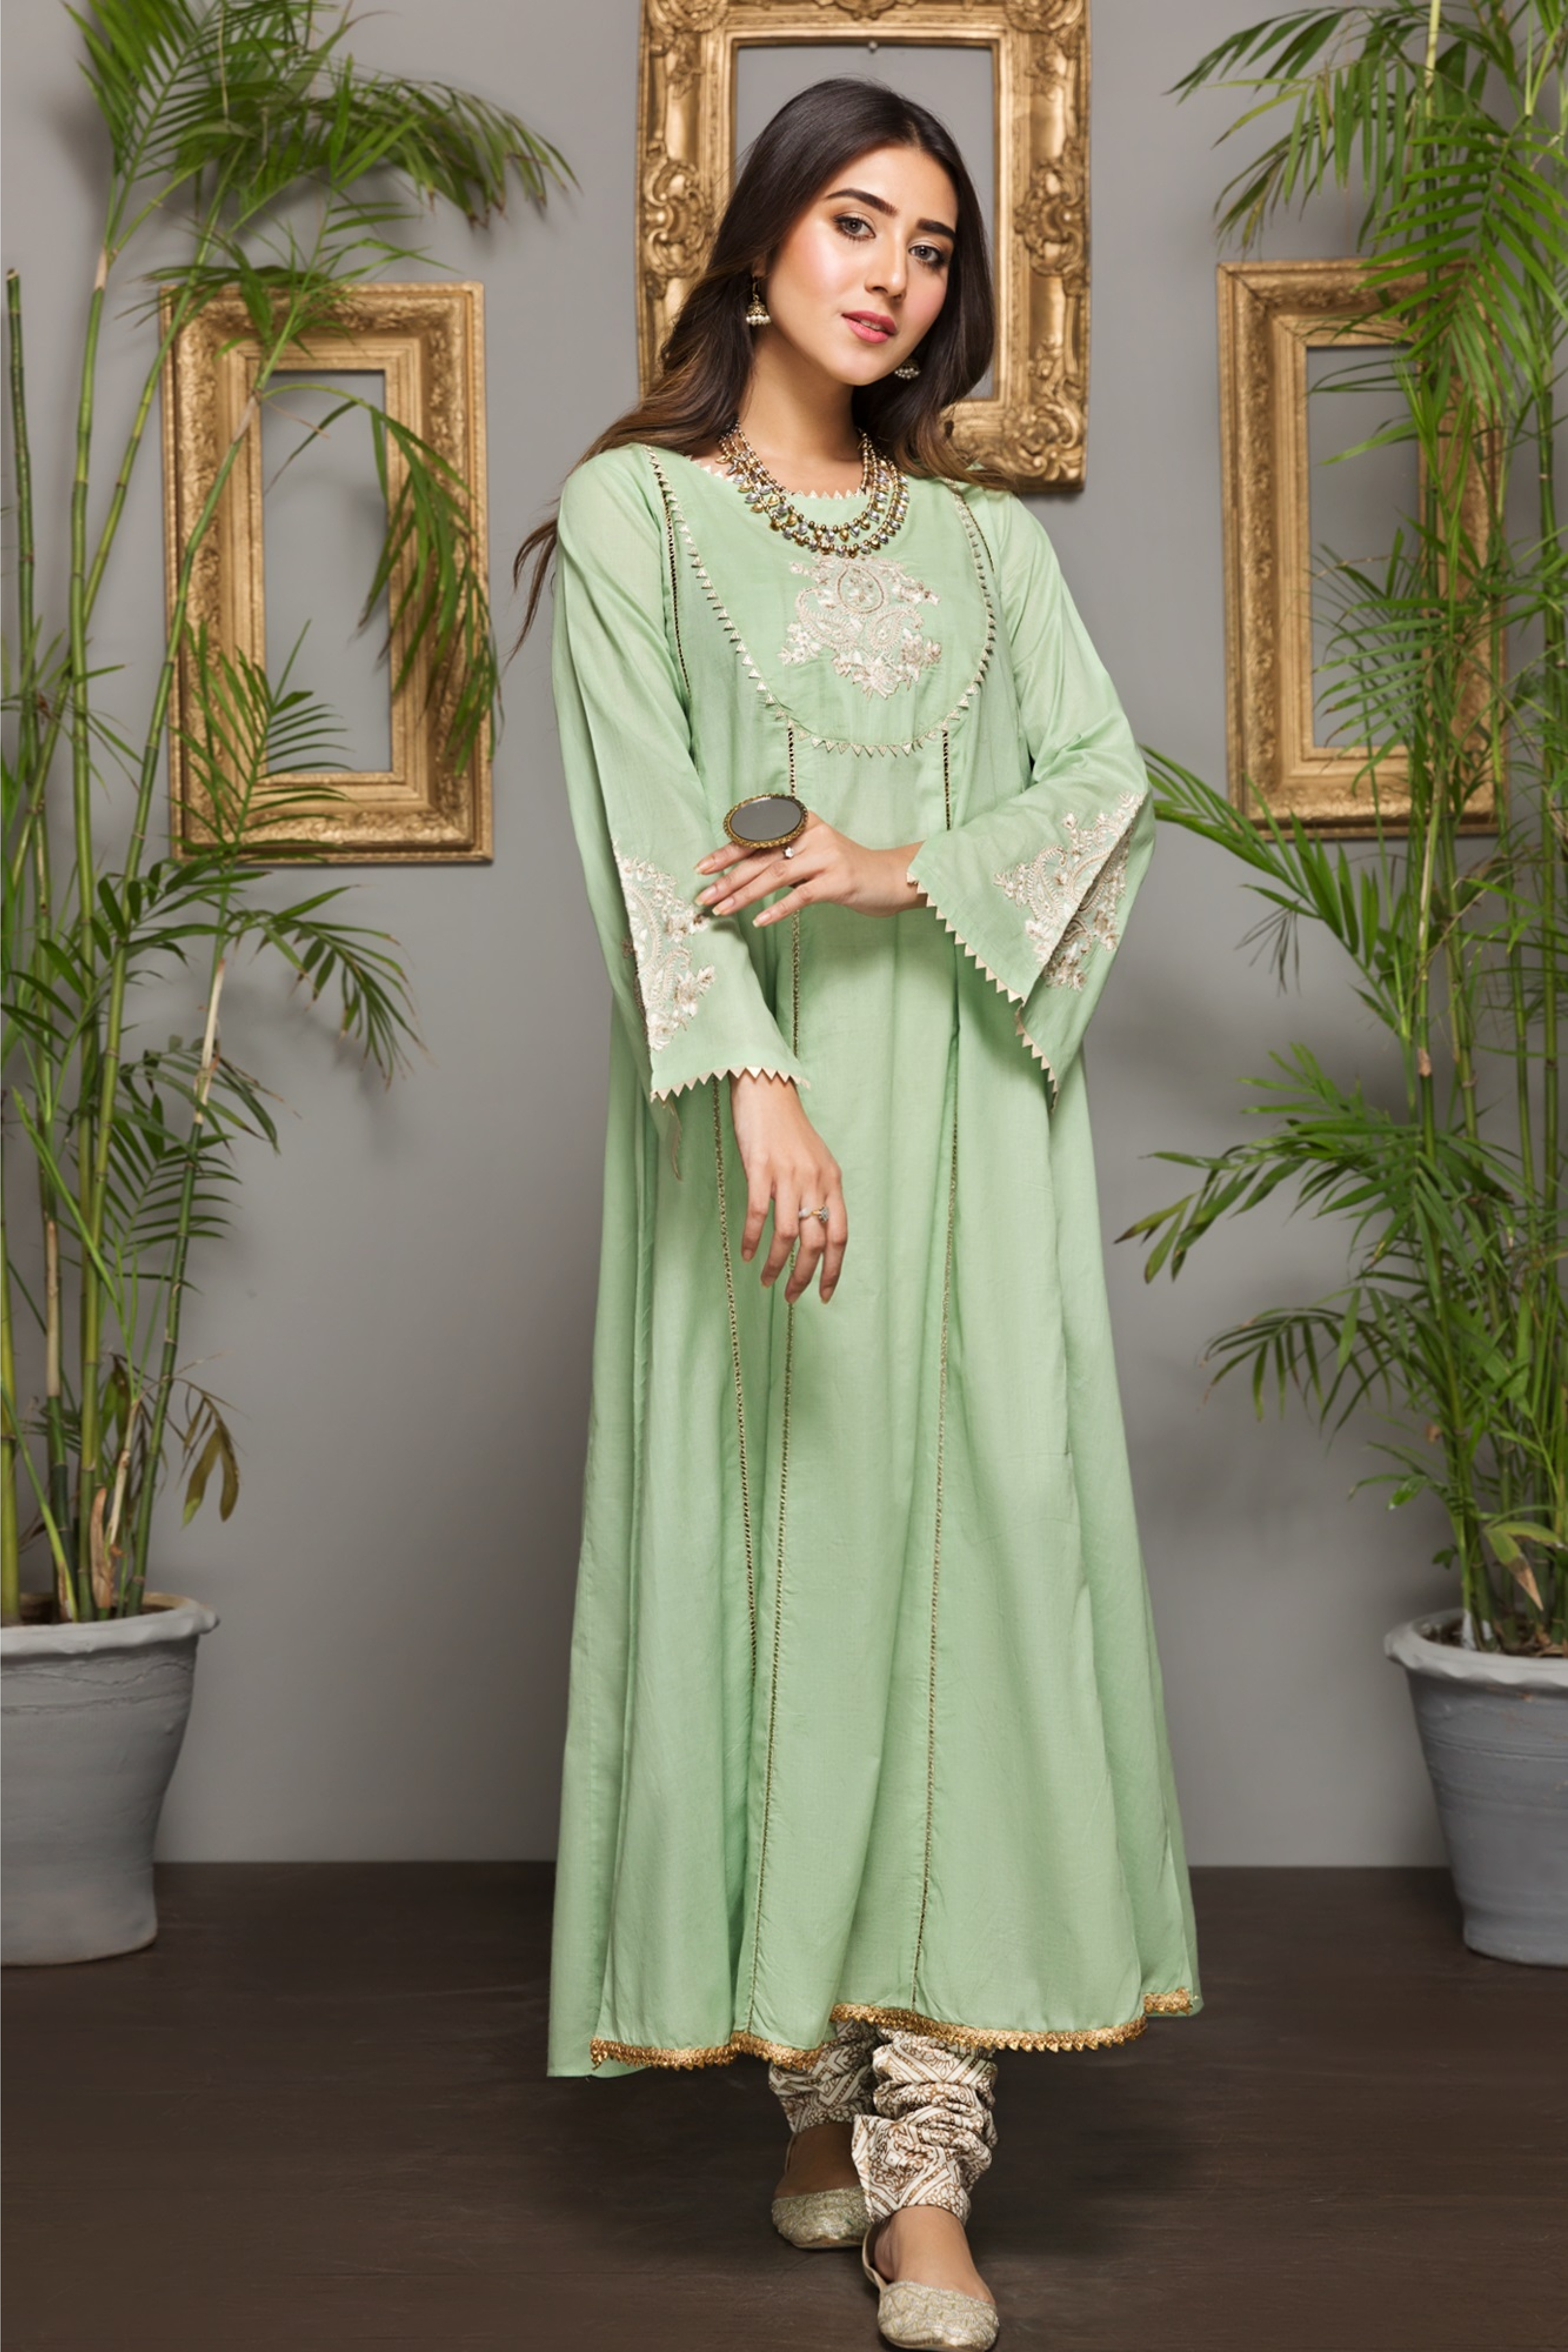 ORCHID (EMBROIDERED FROCK )